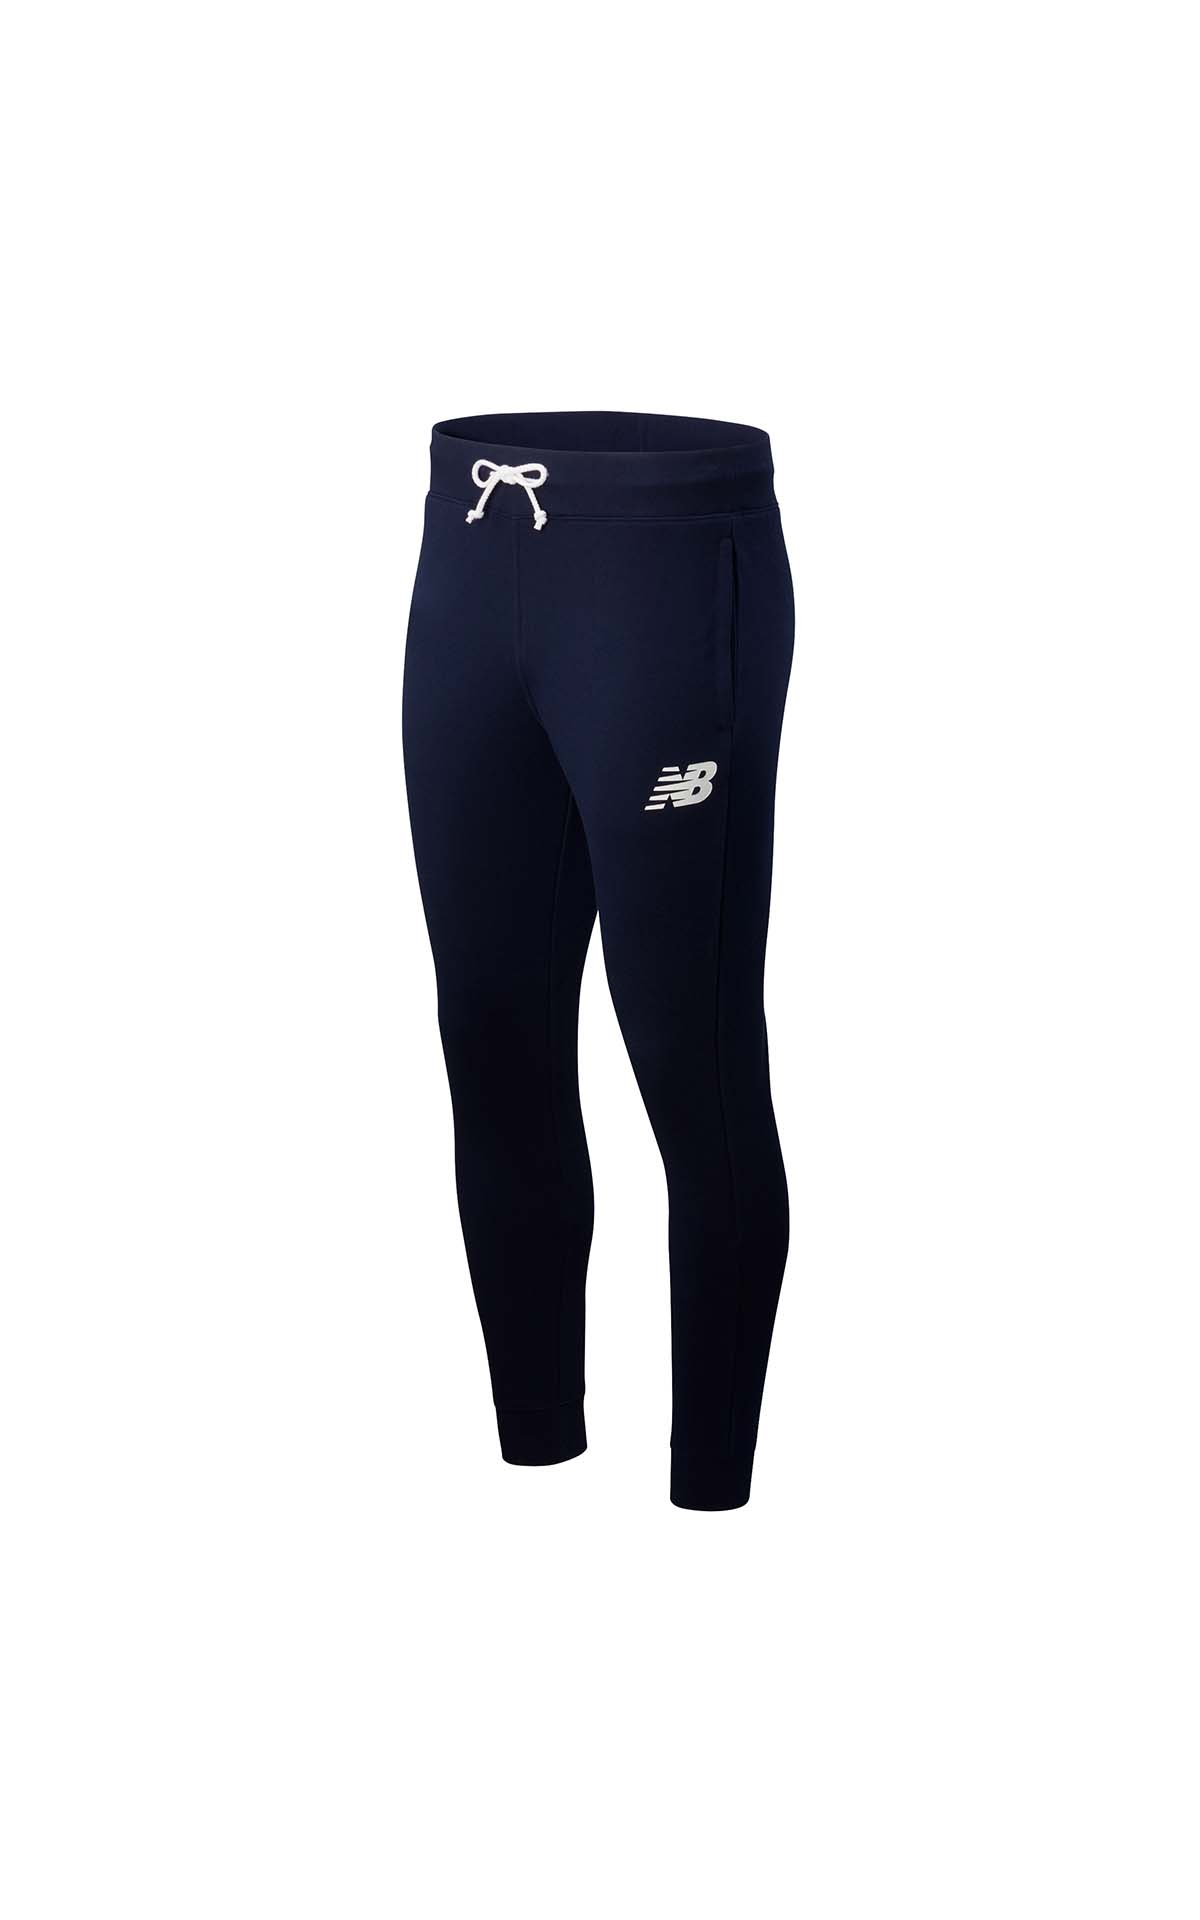 New Balance Core tapered sweatpants